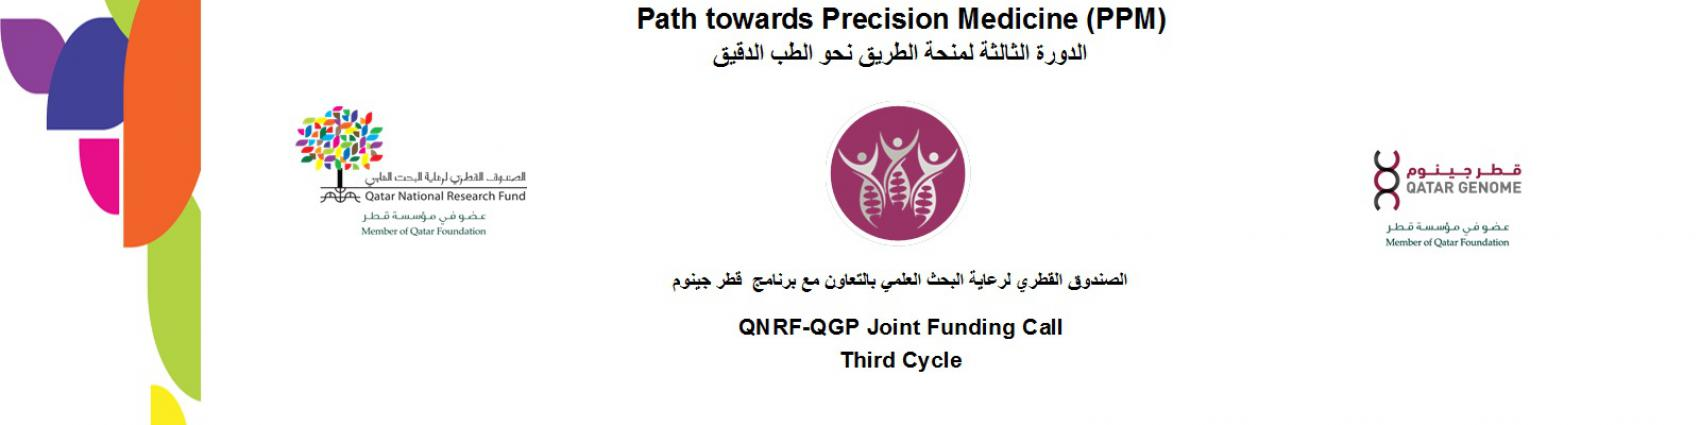 Third Cycle of Path Towards Precision Medicine (PPM)